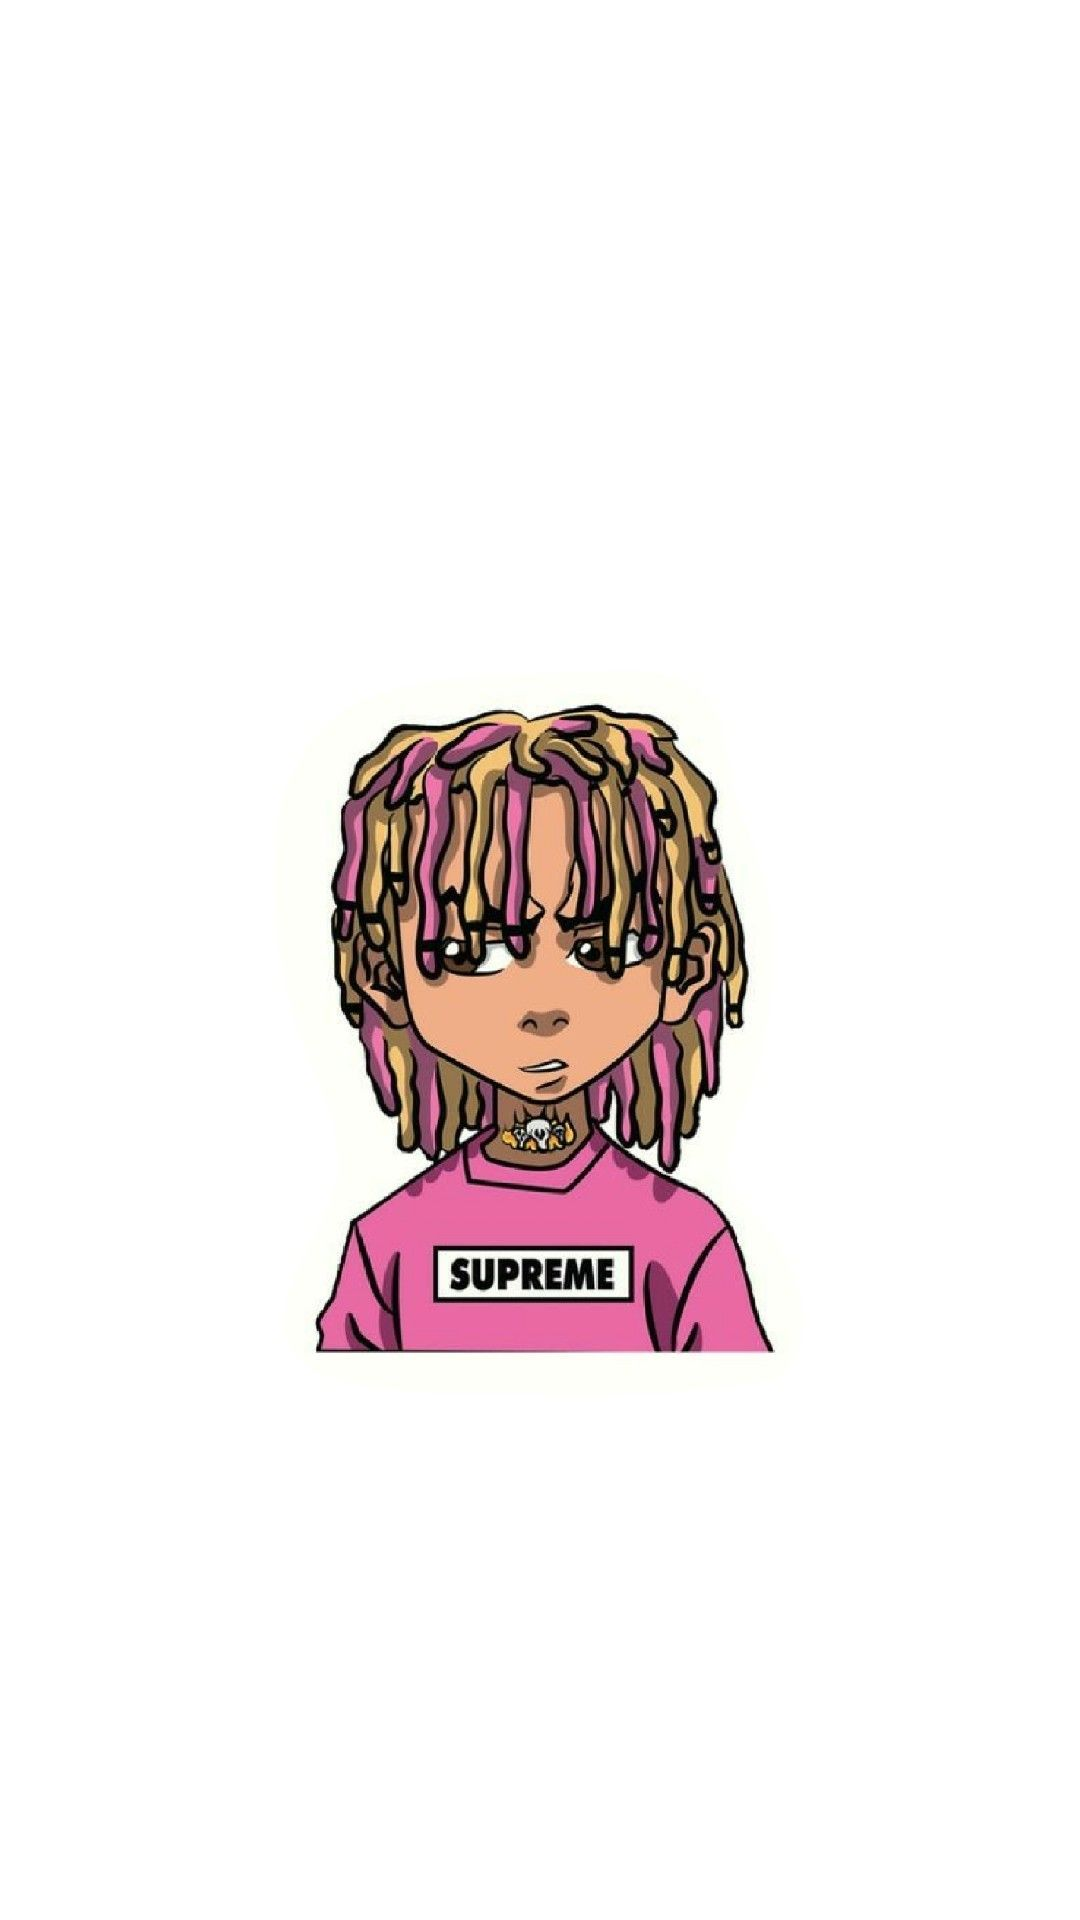 Gucci E Gang Cartoon Wallpapers Top Free Gucci E Gang Cartoon